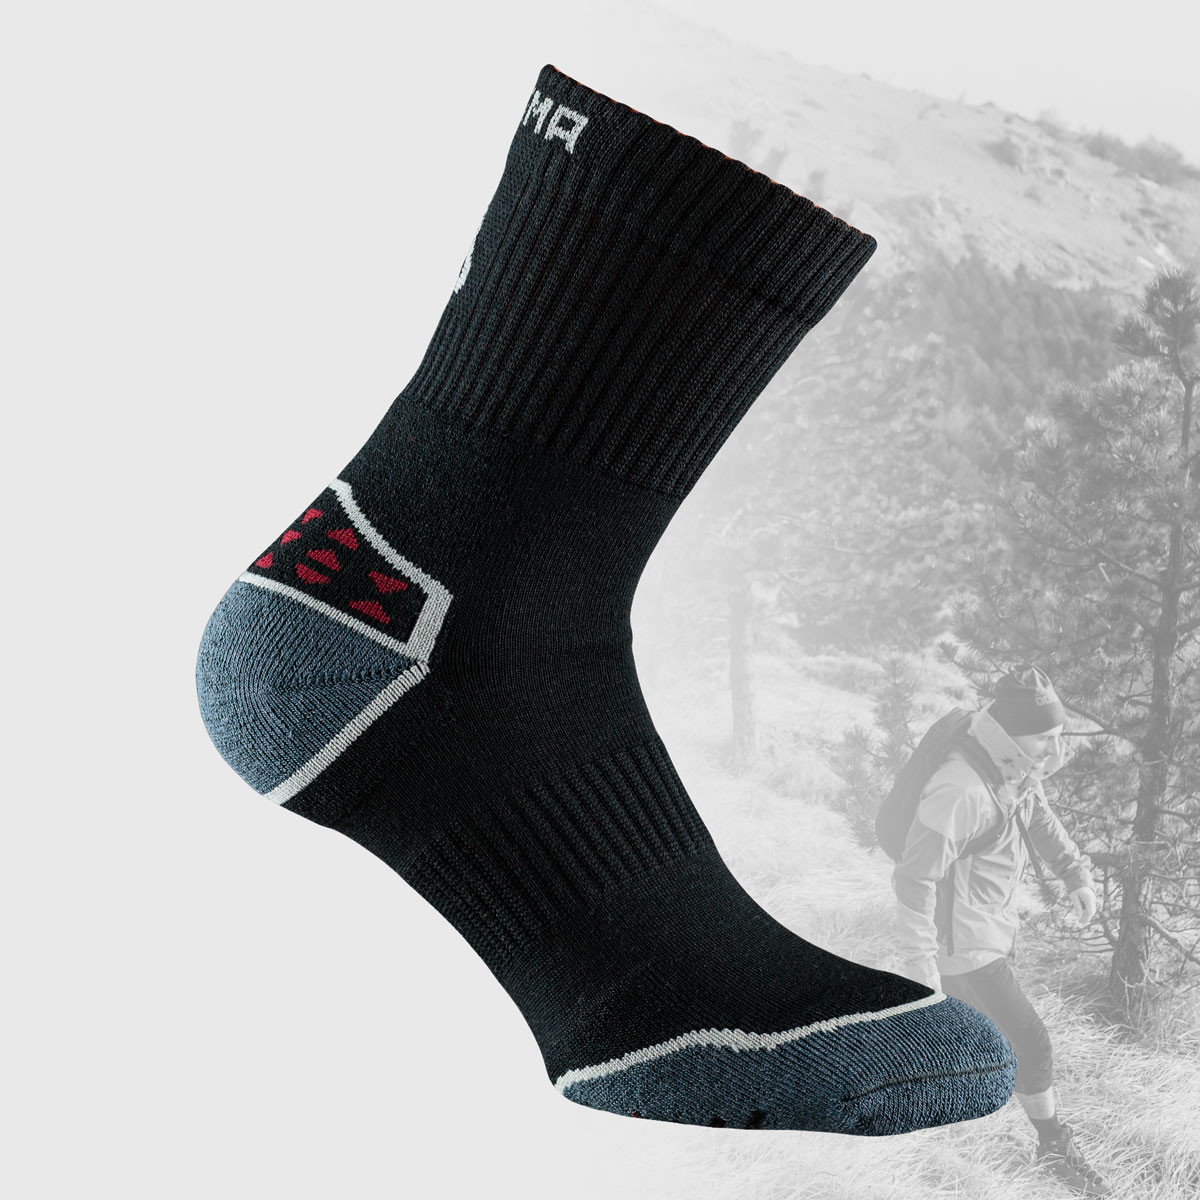 black hiking socks